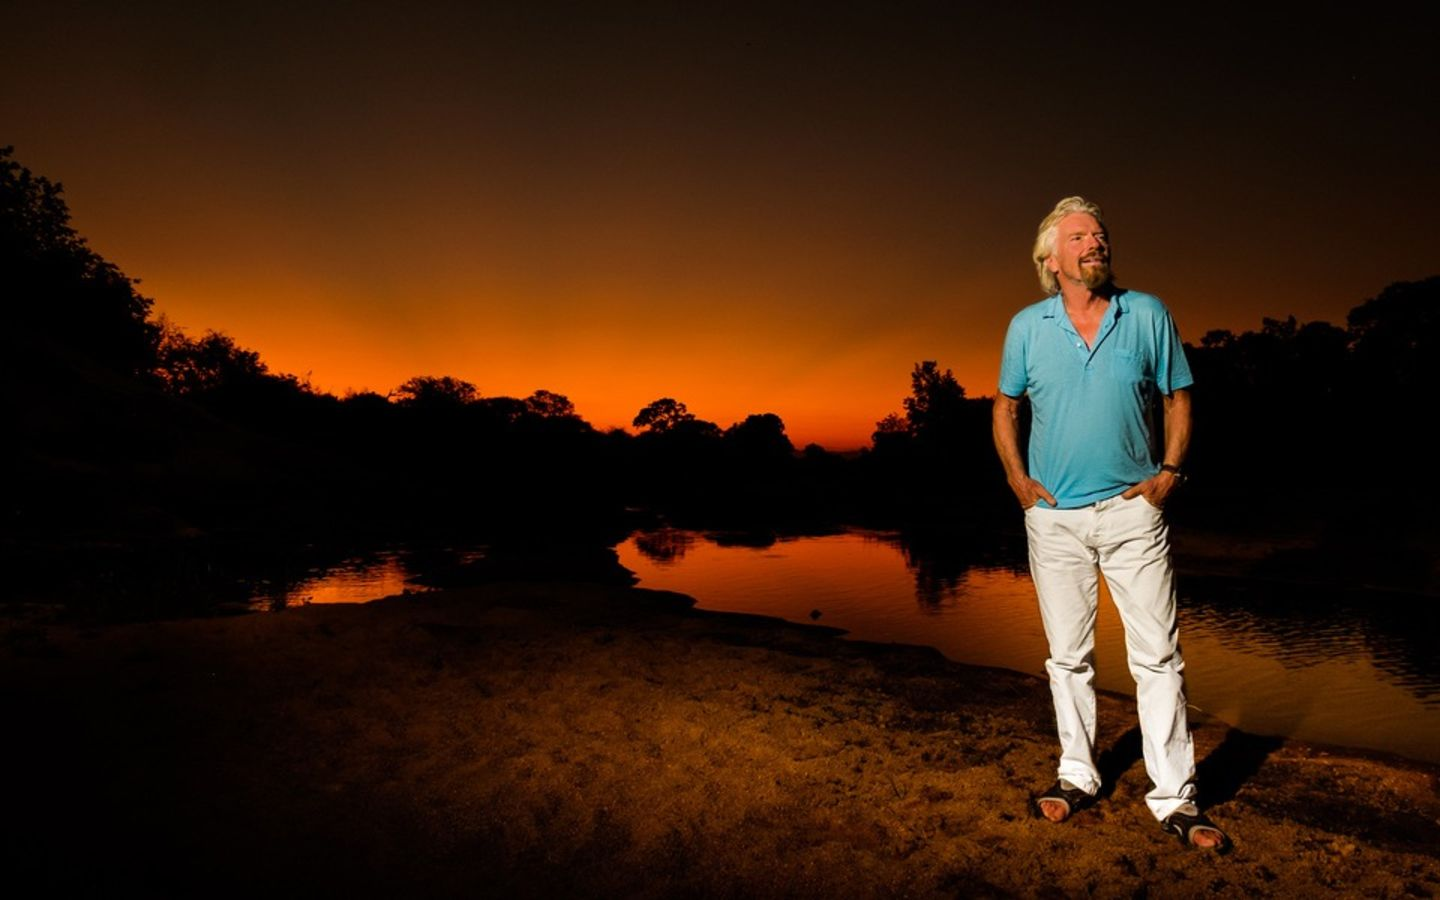 Richard Branson with his hands in his pockets and an orange and black sunset behind him